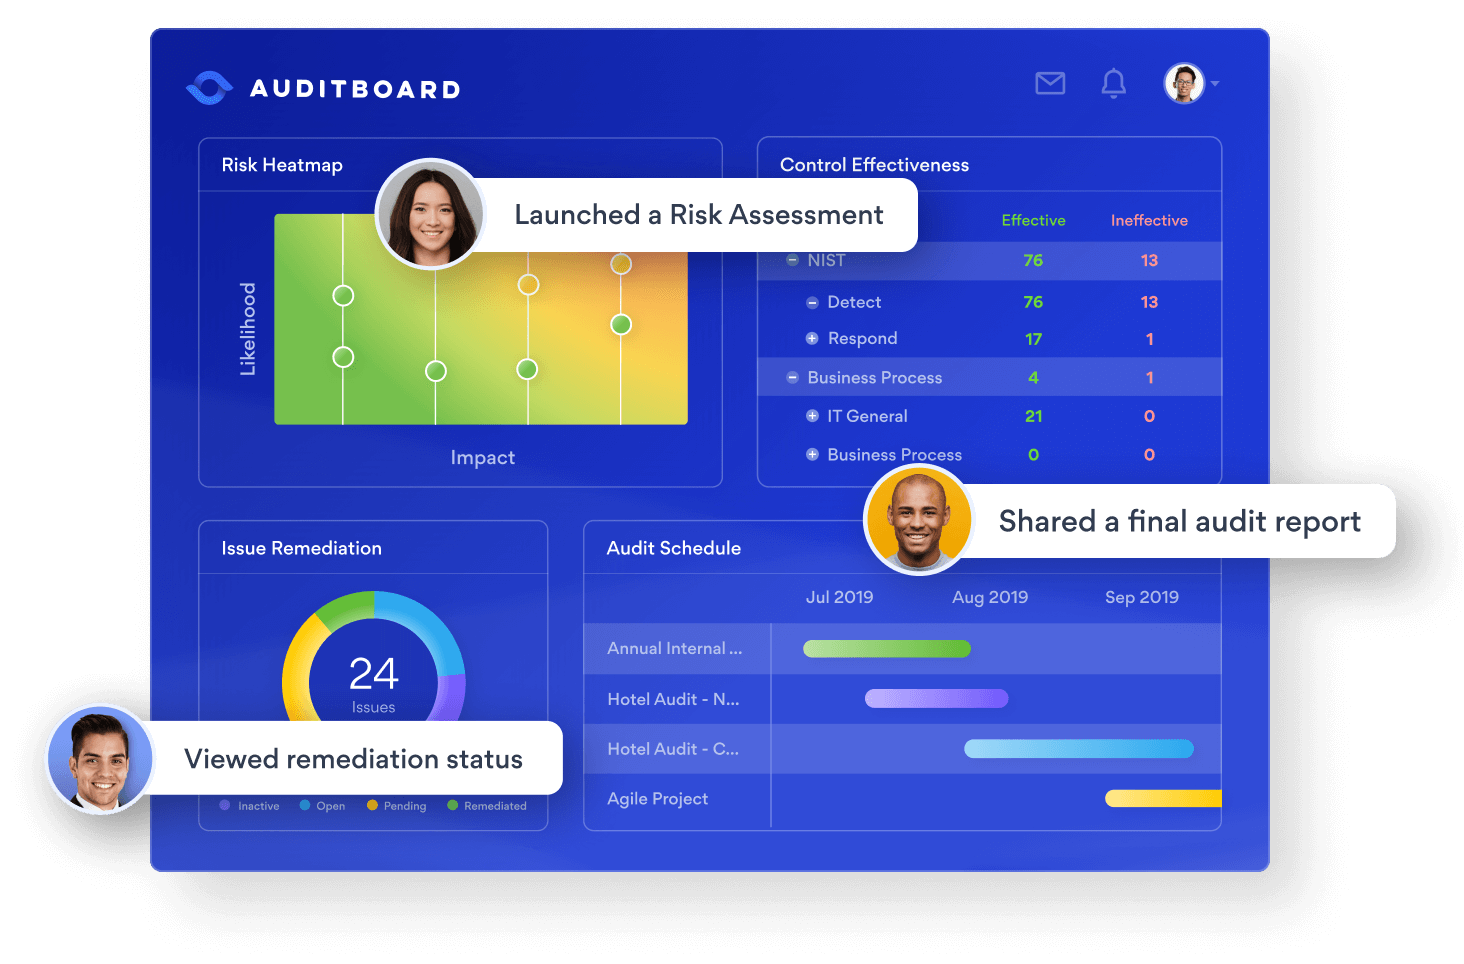 auditboard-dashboard-view.png